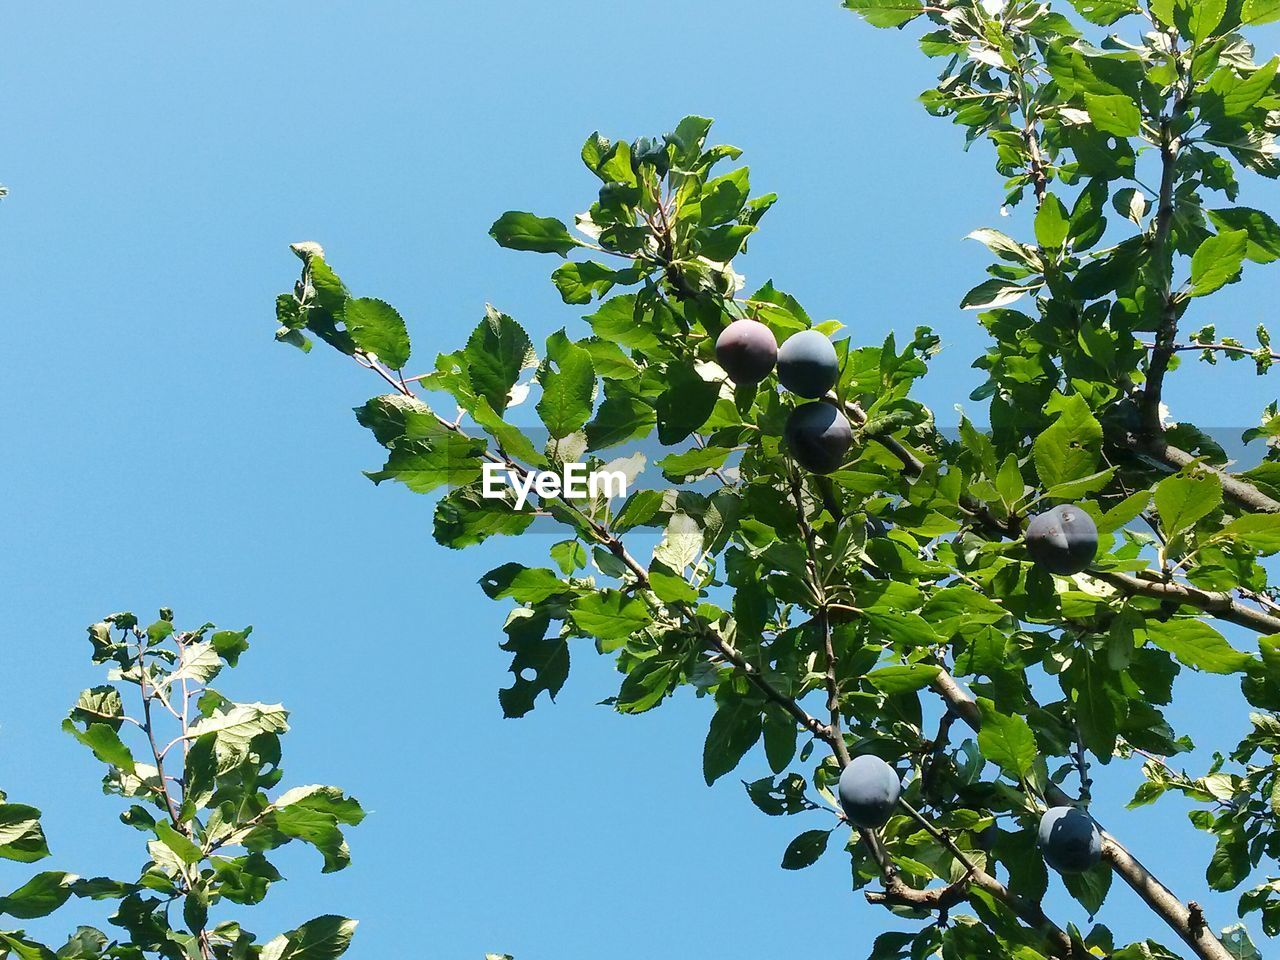 fruit, leaf, growth, low angle view, food and drink, clear sky, green color, food, day, tree, no people, outdoors, freshness, nature, plant, healthy eating, agriculture, blue, branch, beauty in nature, sky, close-up